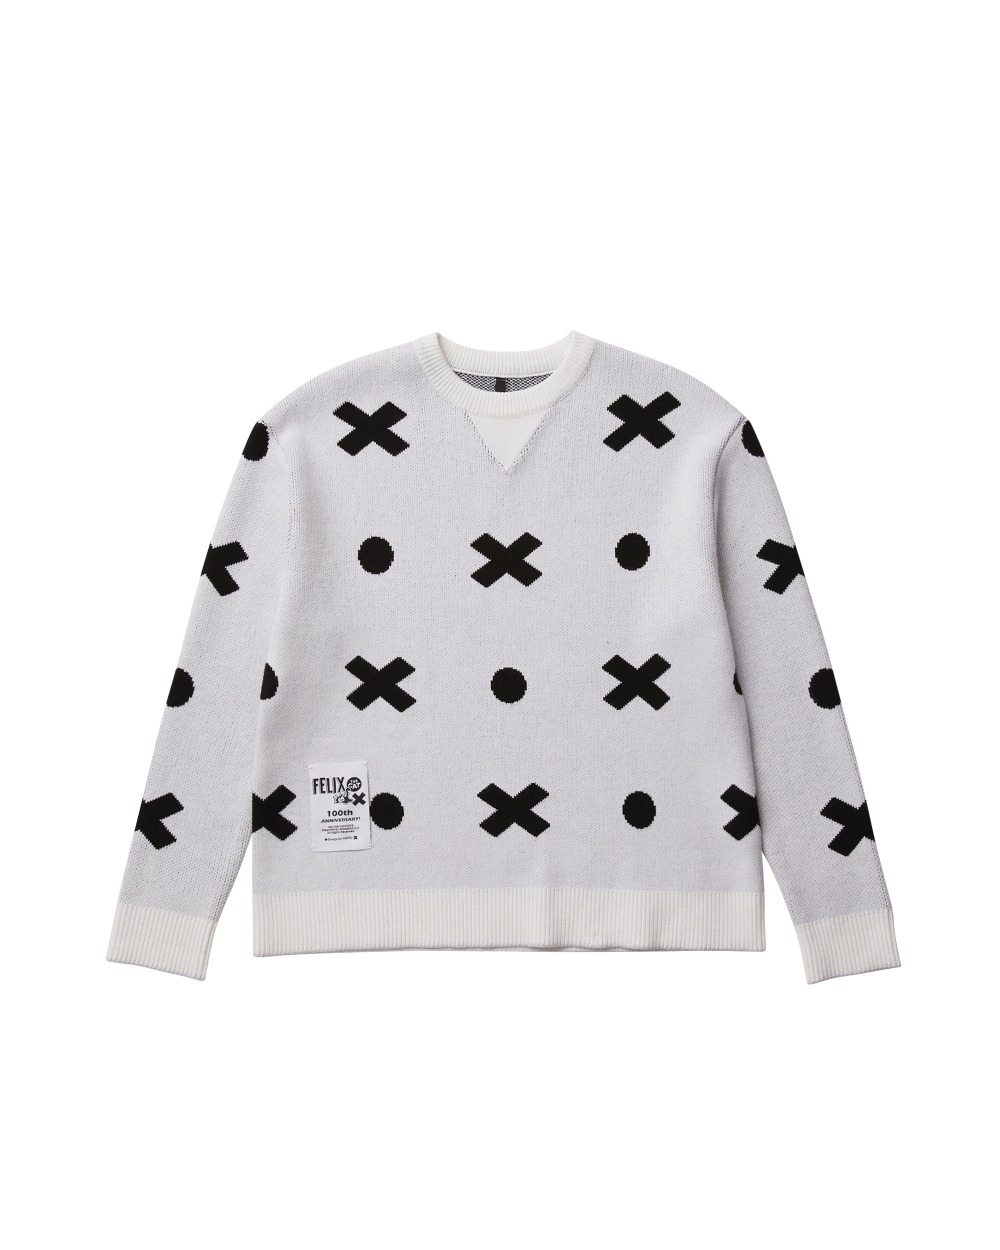 SWBD X FELIX OX KNIT (WHITE)